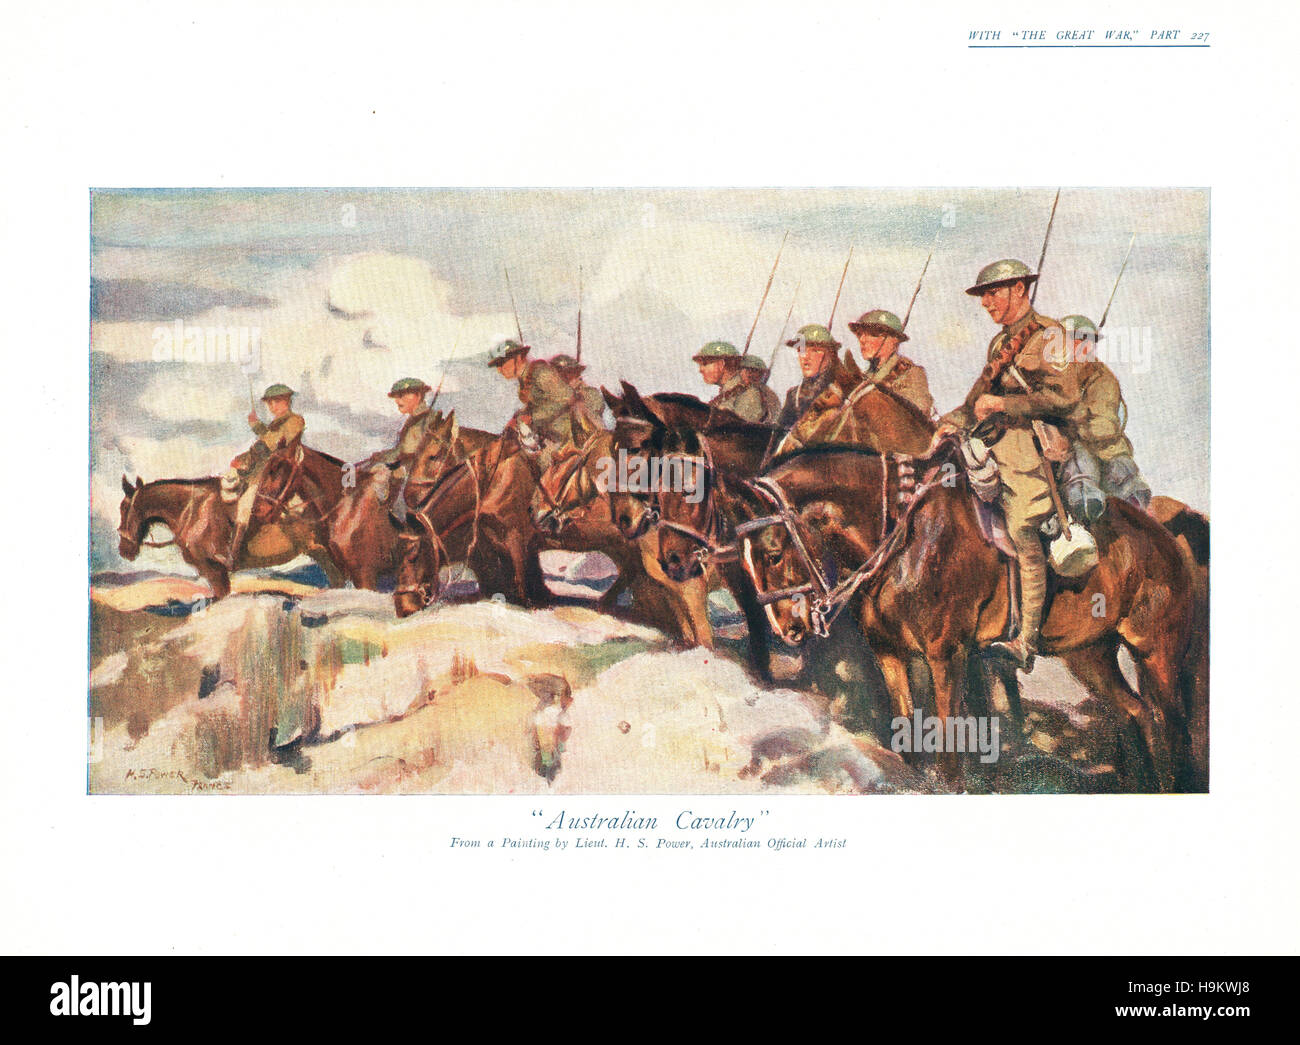 1918 The Great War front page Illustration of Australian Cavalry - Stock Image